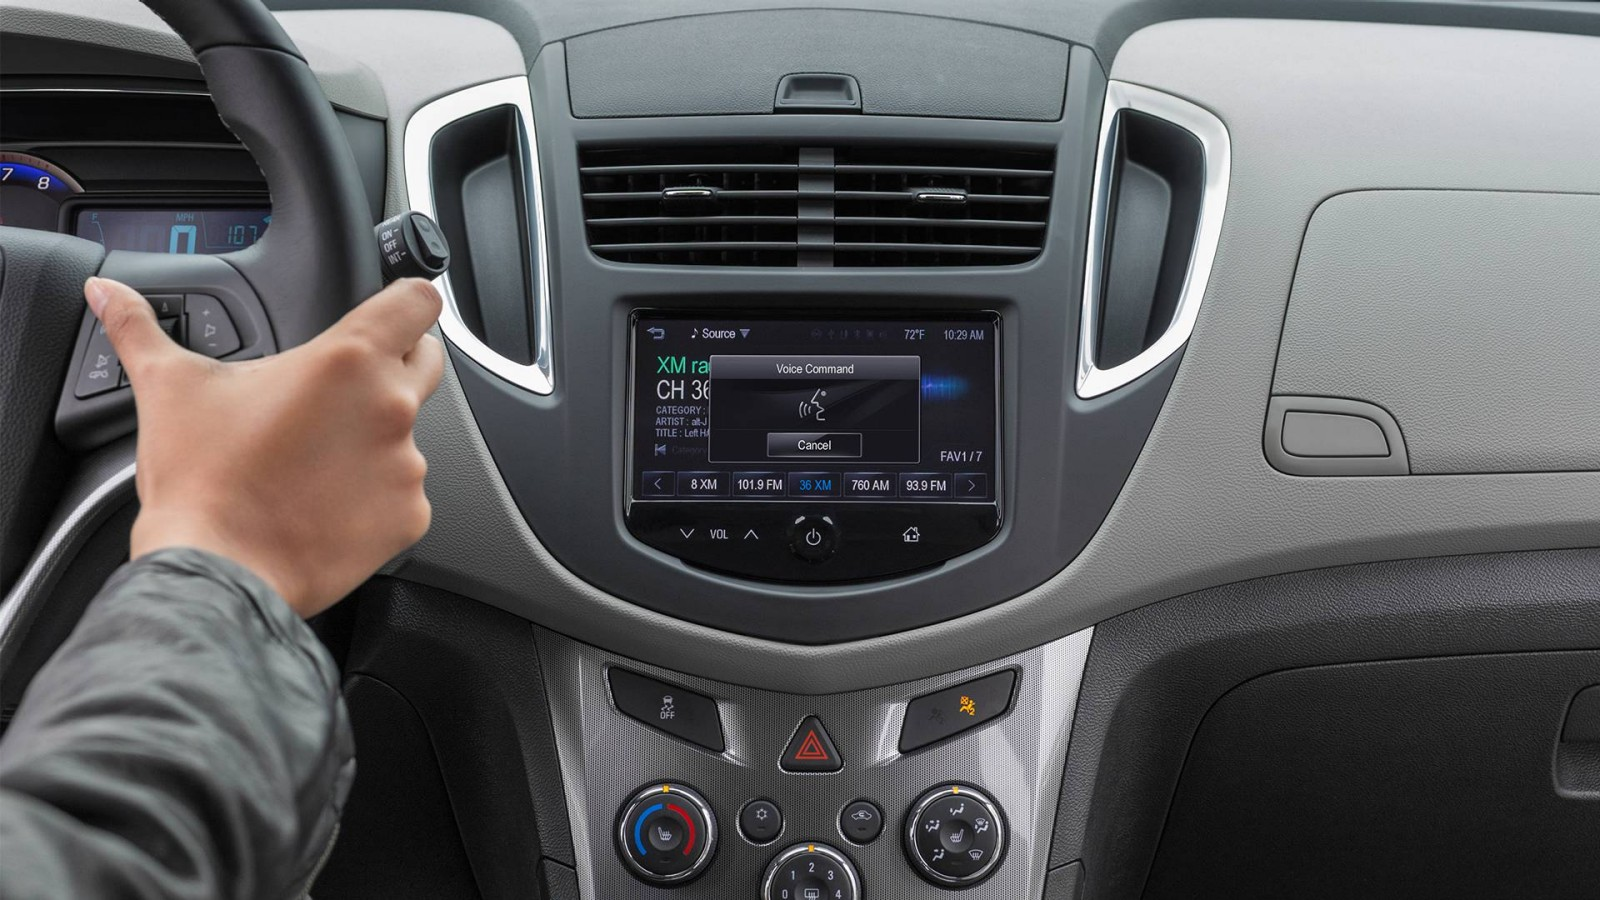 New Chevrolet Trax Interior image 1